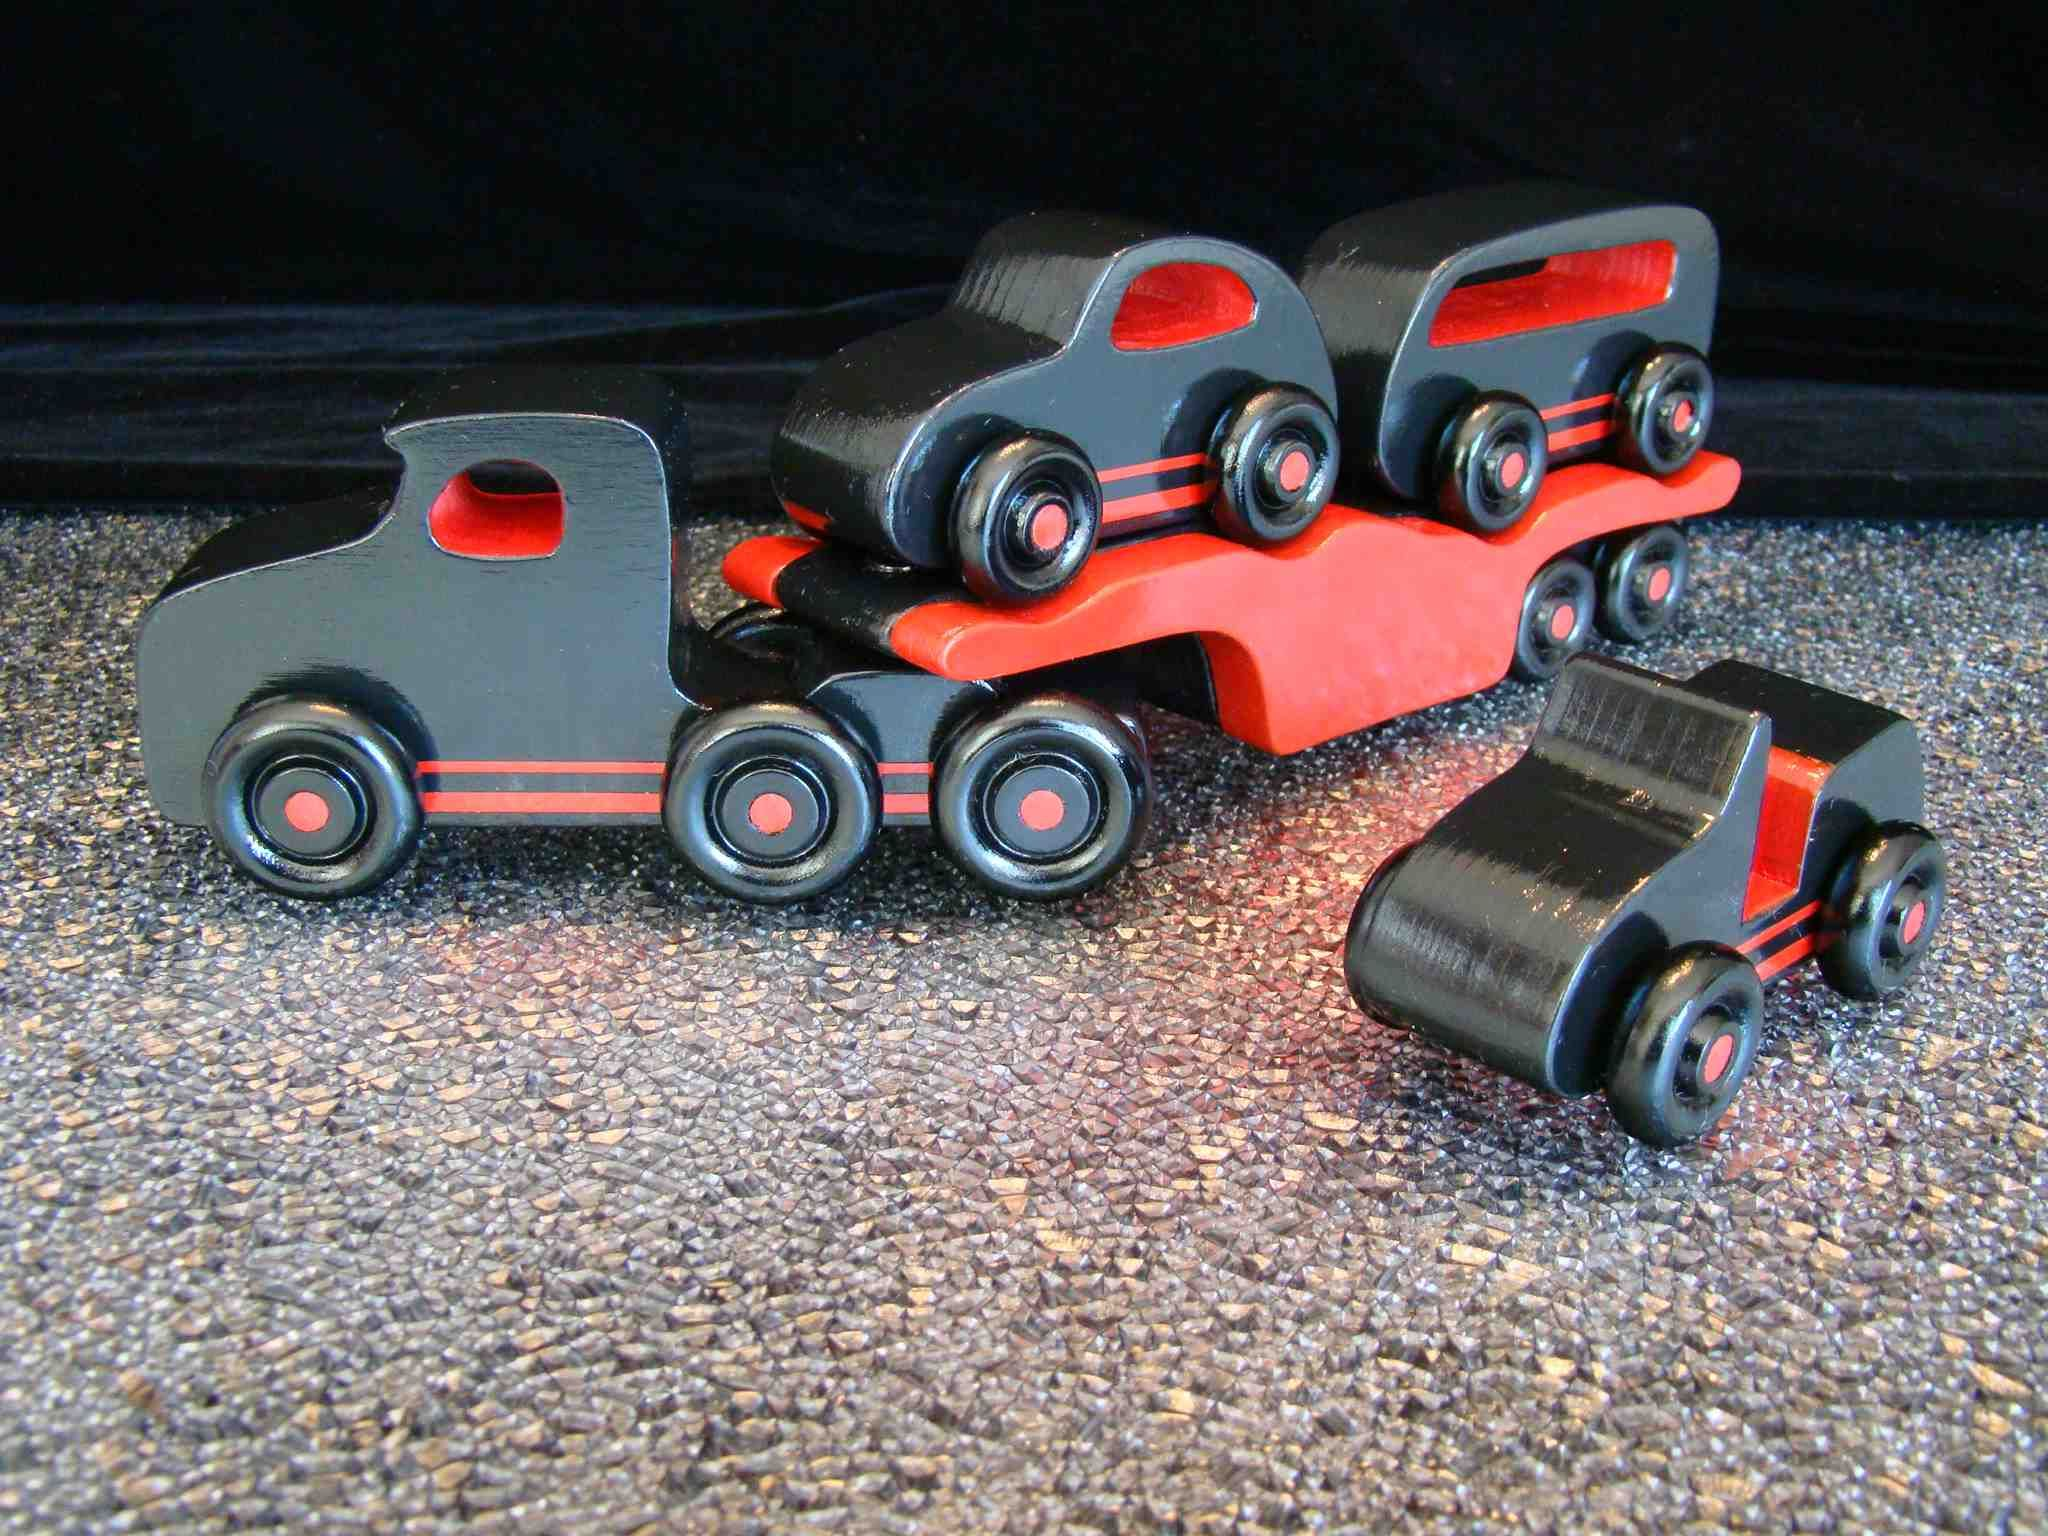 Toys car and truck  Handmade Wooden Toy Truck Car Carrier Hauler  Wooden Toys